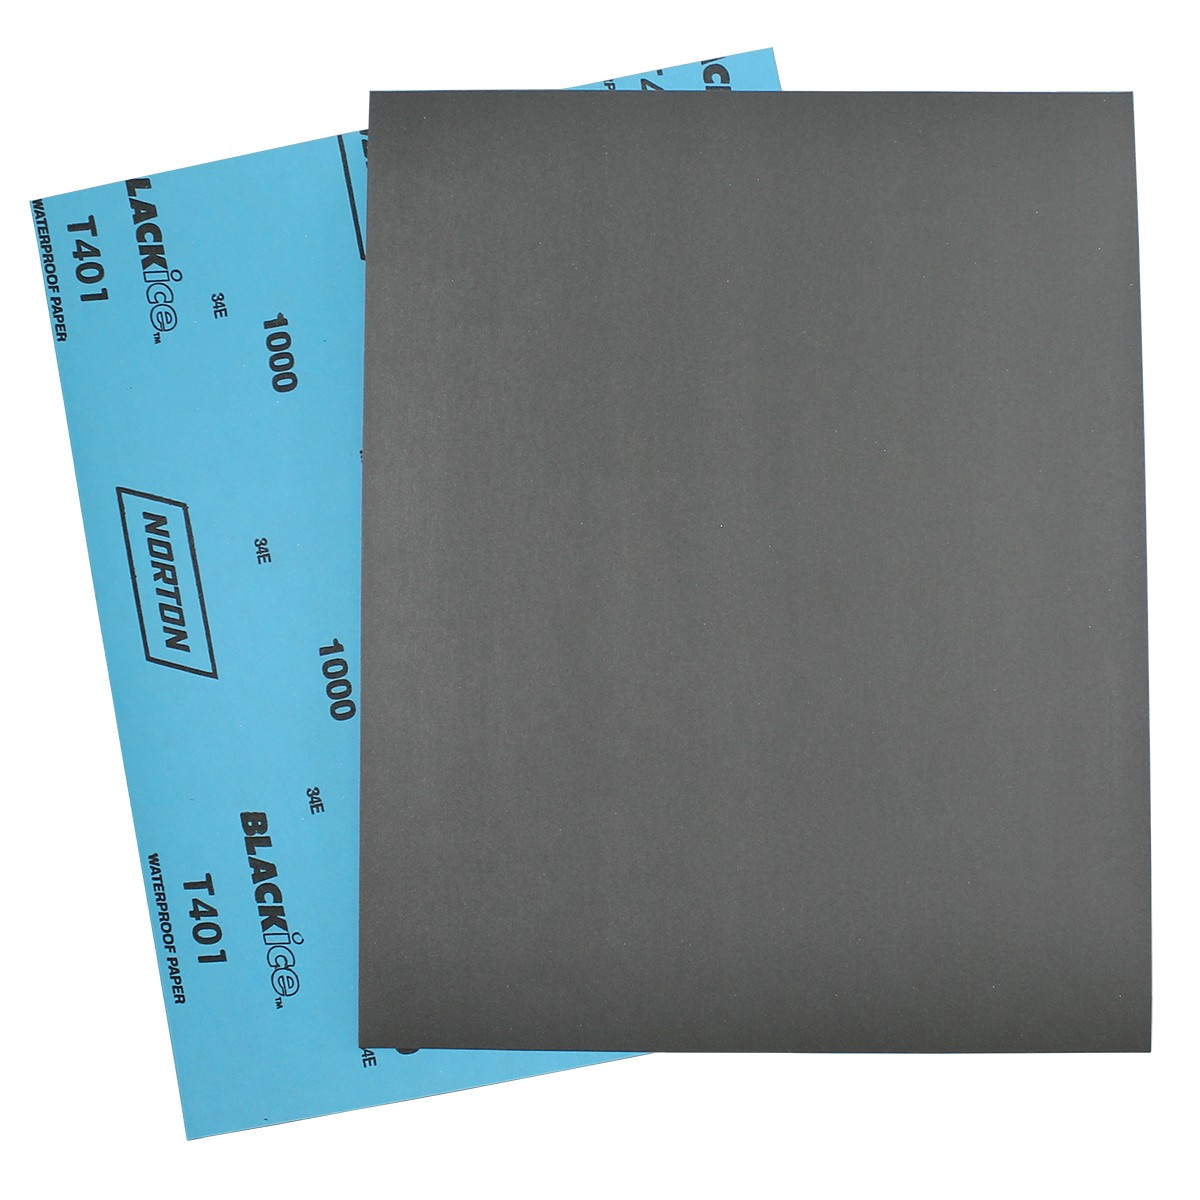 Norton Emery Polishing Paper - 400 Grit